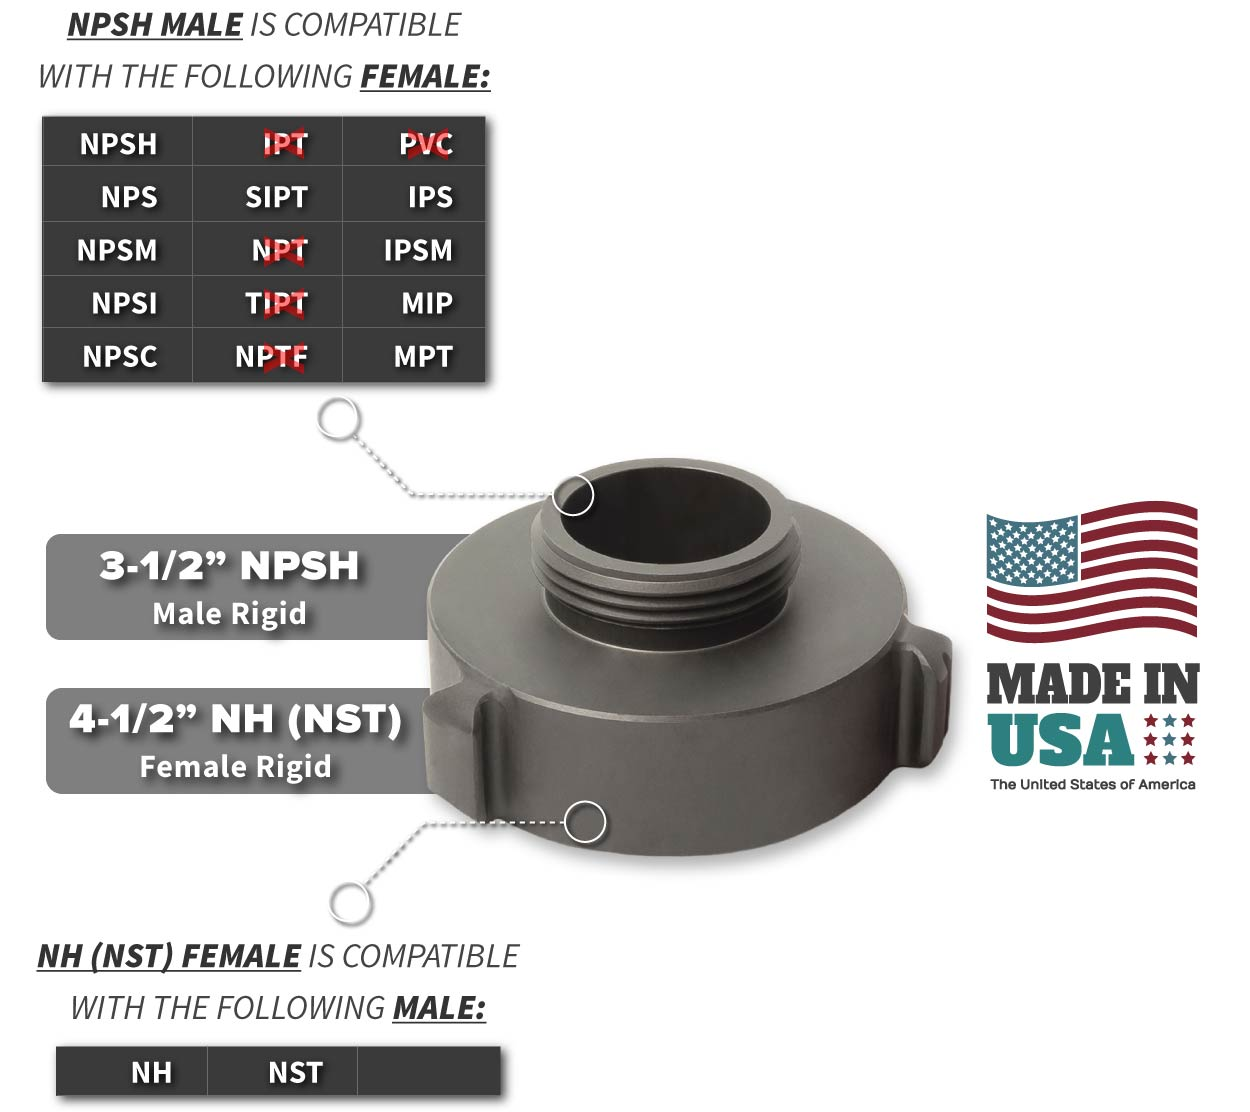 4.5 Inch NH-NST Female x 3.5 Inch NPSH Male Compatibility Thread Chart